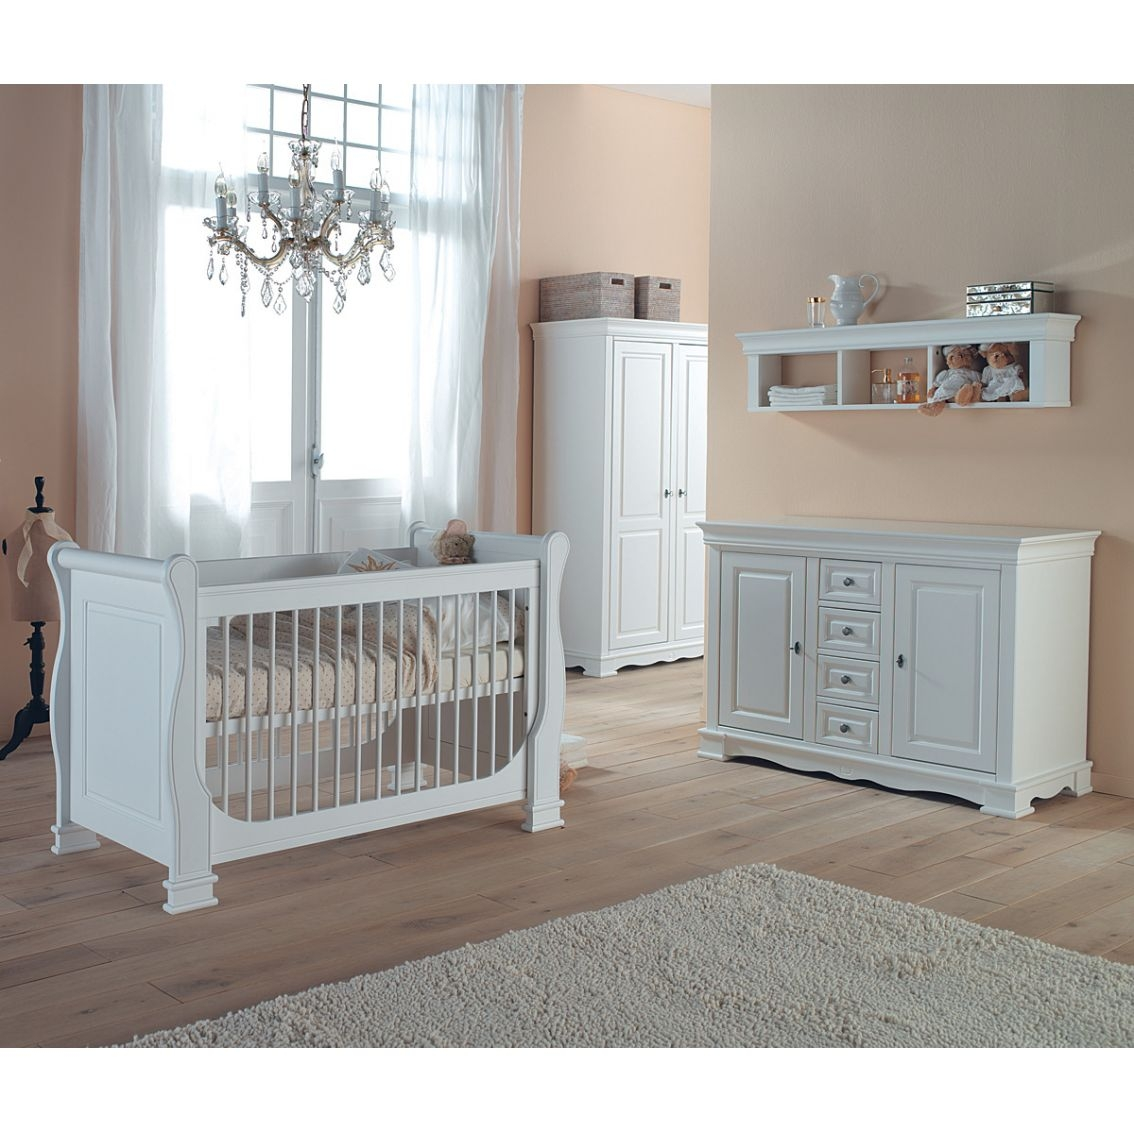 baby nursery furniture sets wooden : get really magical ideas baby | nursery WBLSKMD